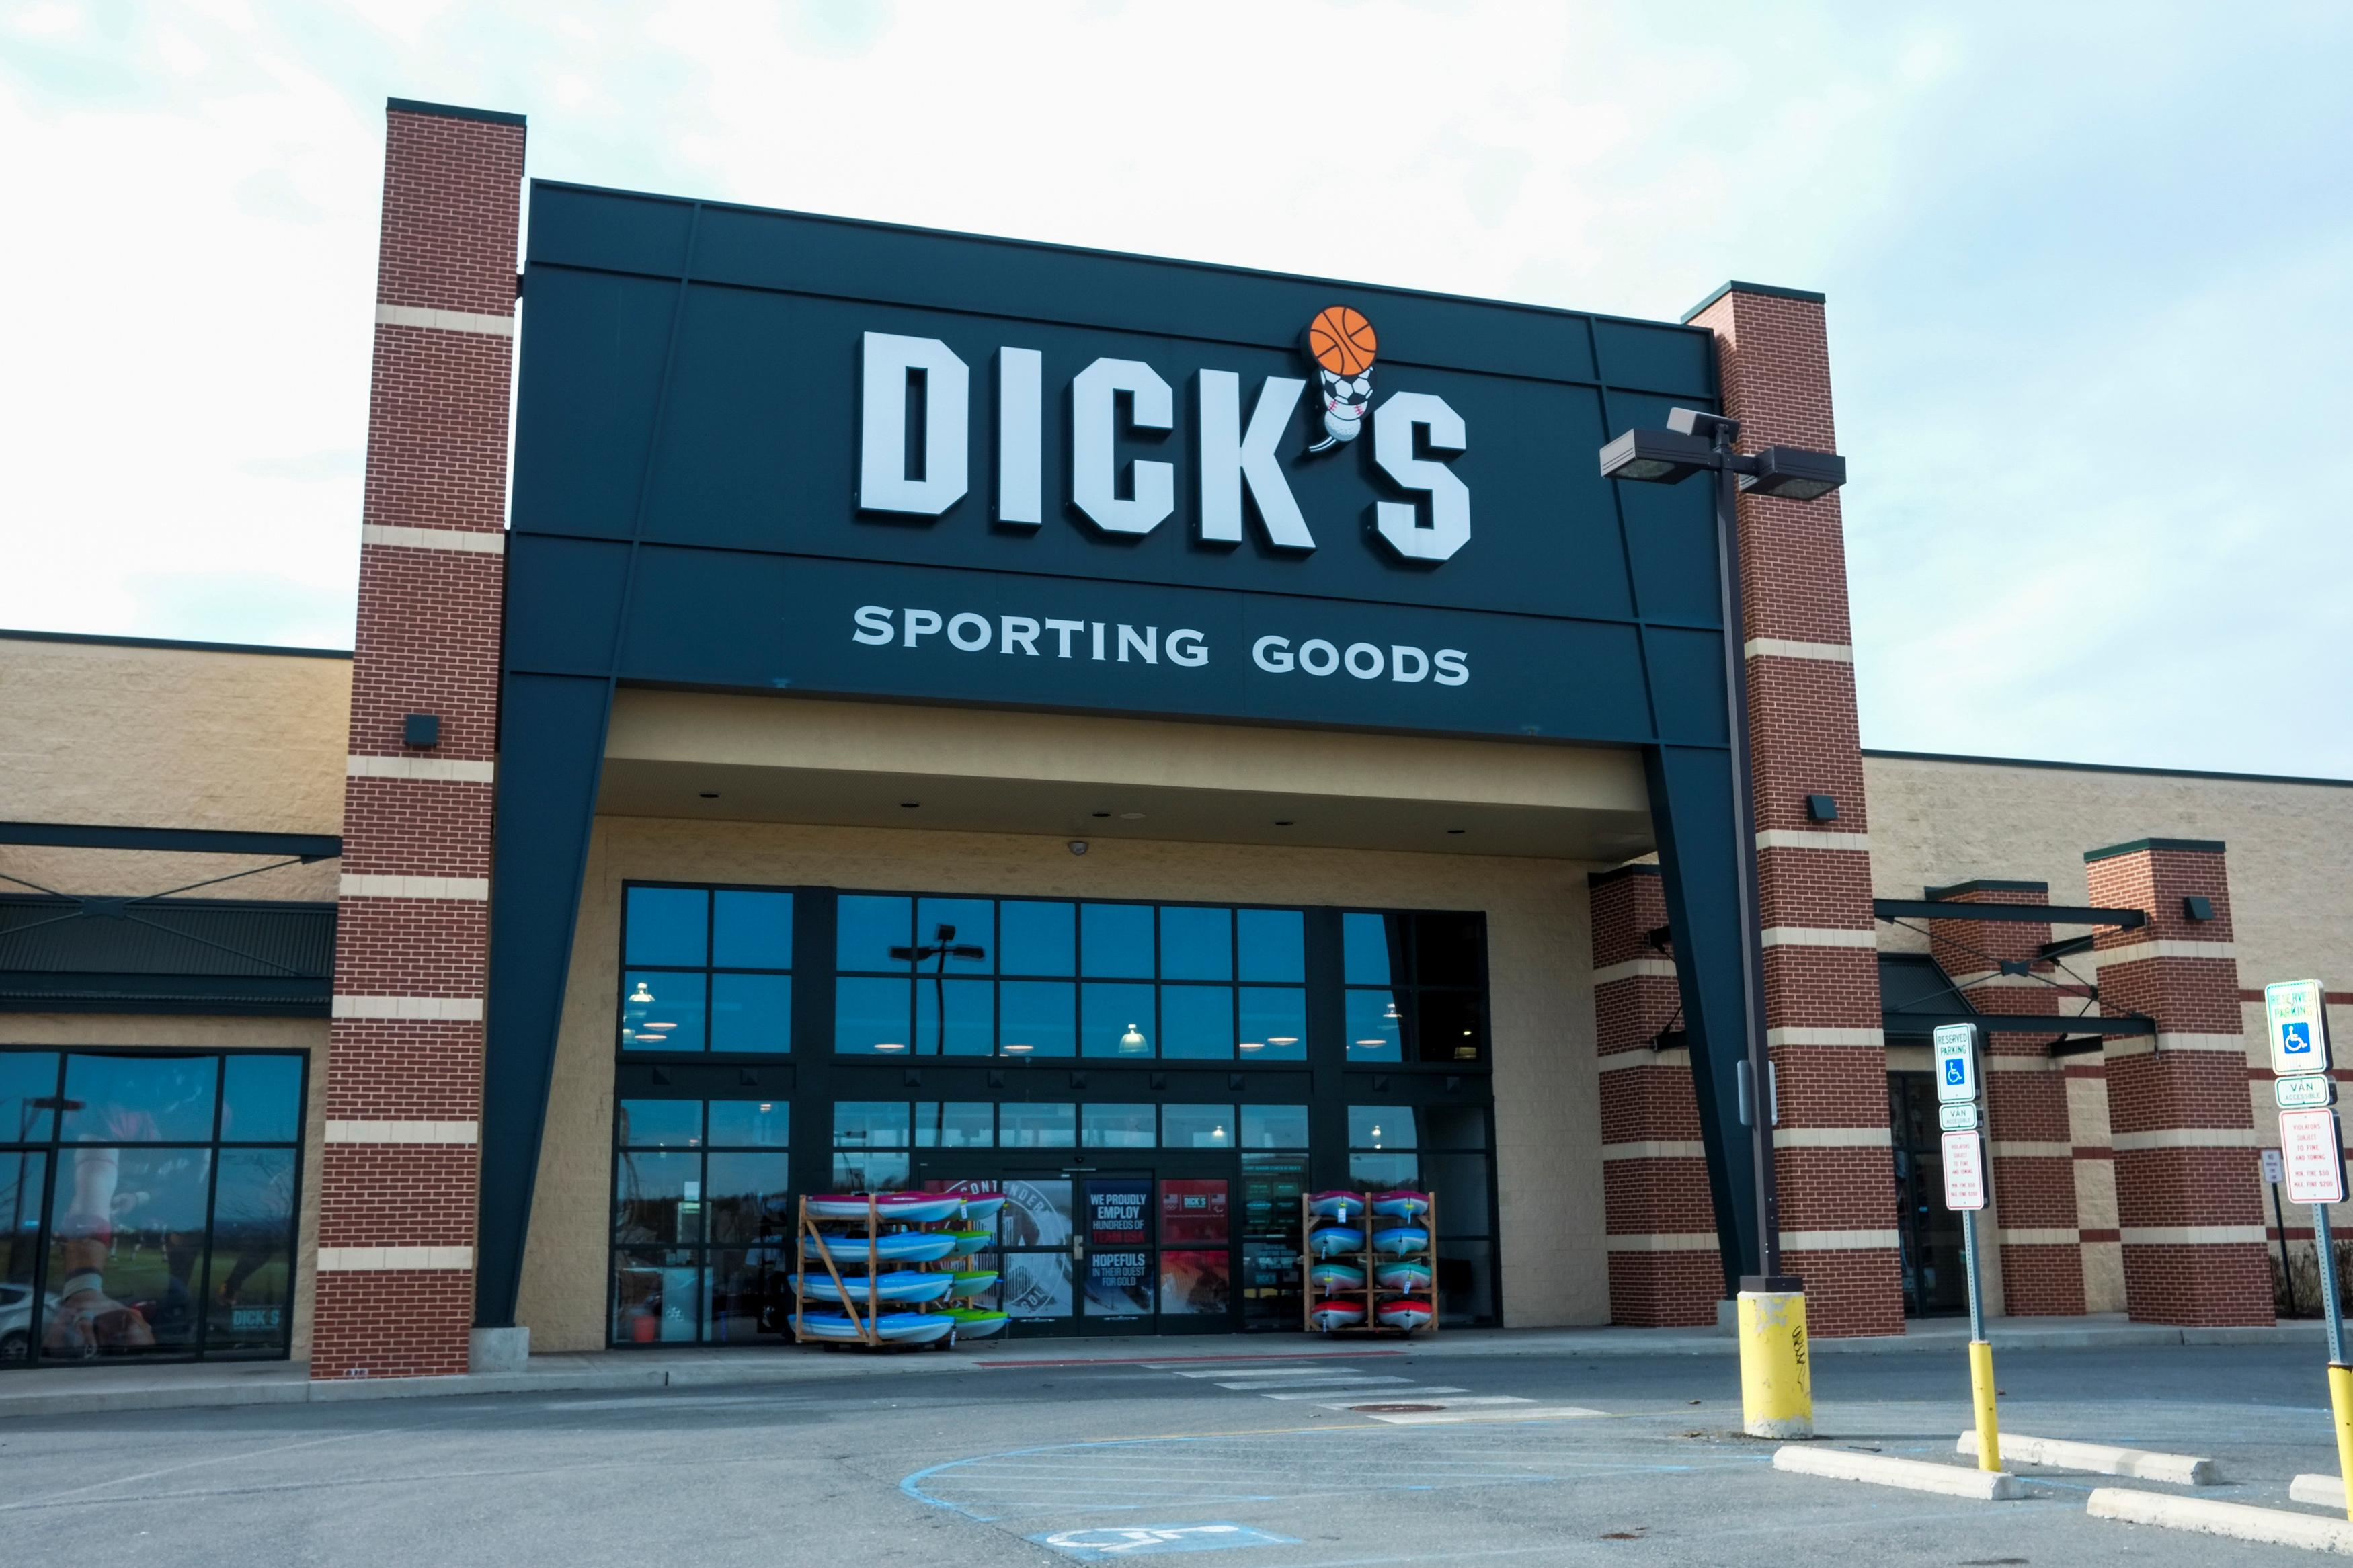 A general view of Dick's Sporting Goods store in Stroudsburg, Pennsylvania, U.S., February 28, 2018. Eduardo Munoz